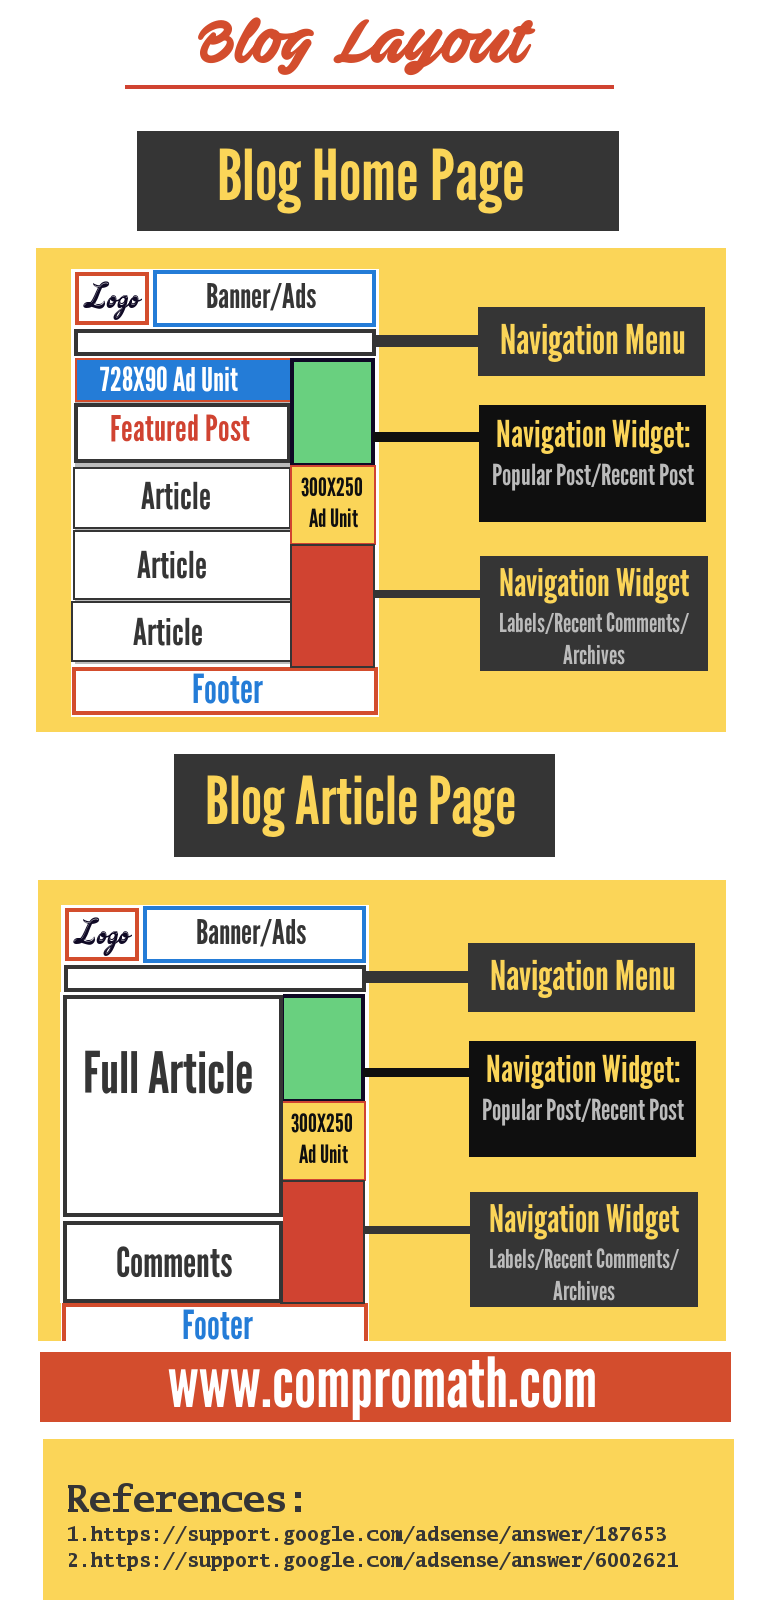 blog layout info-graphics